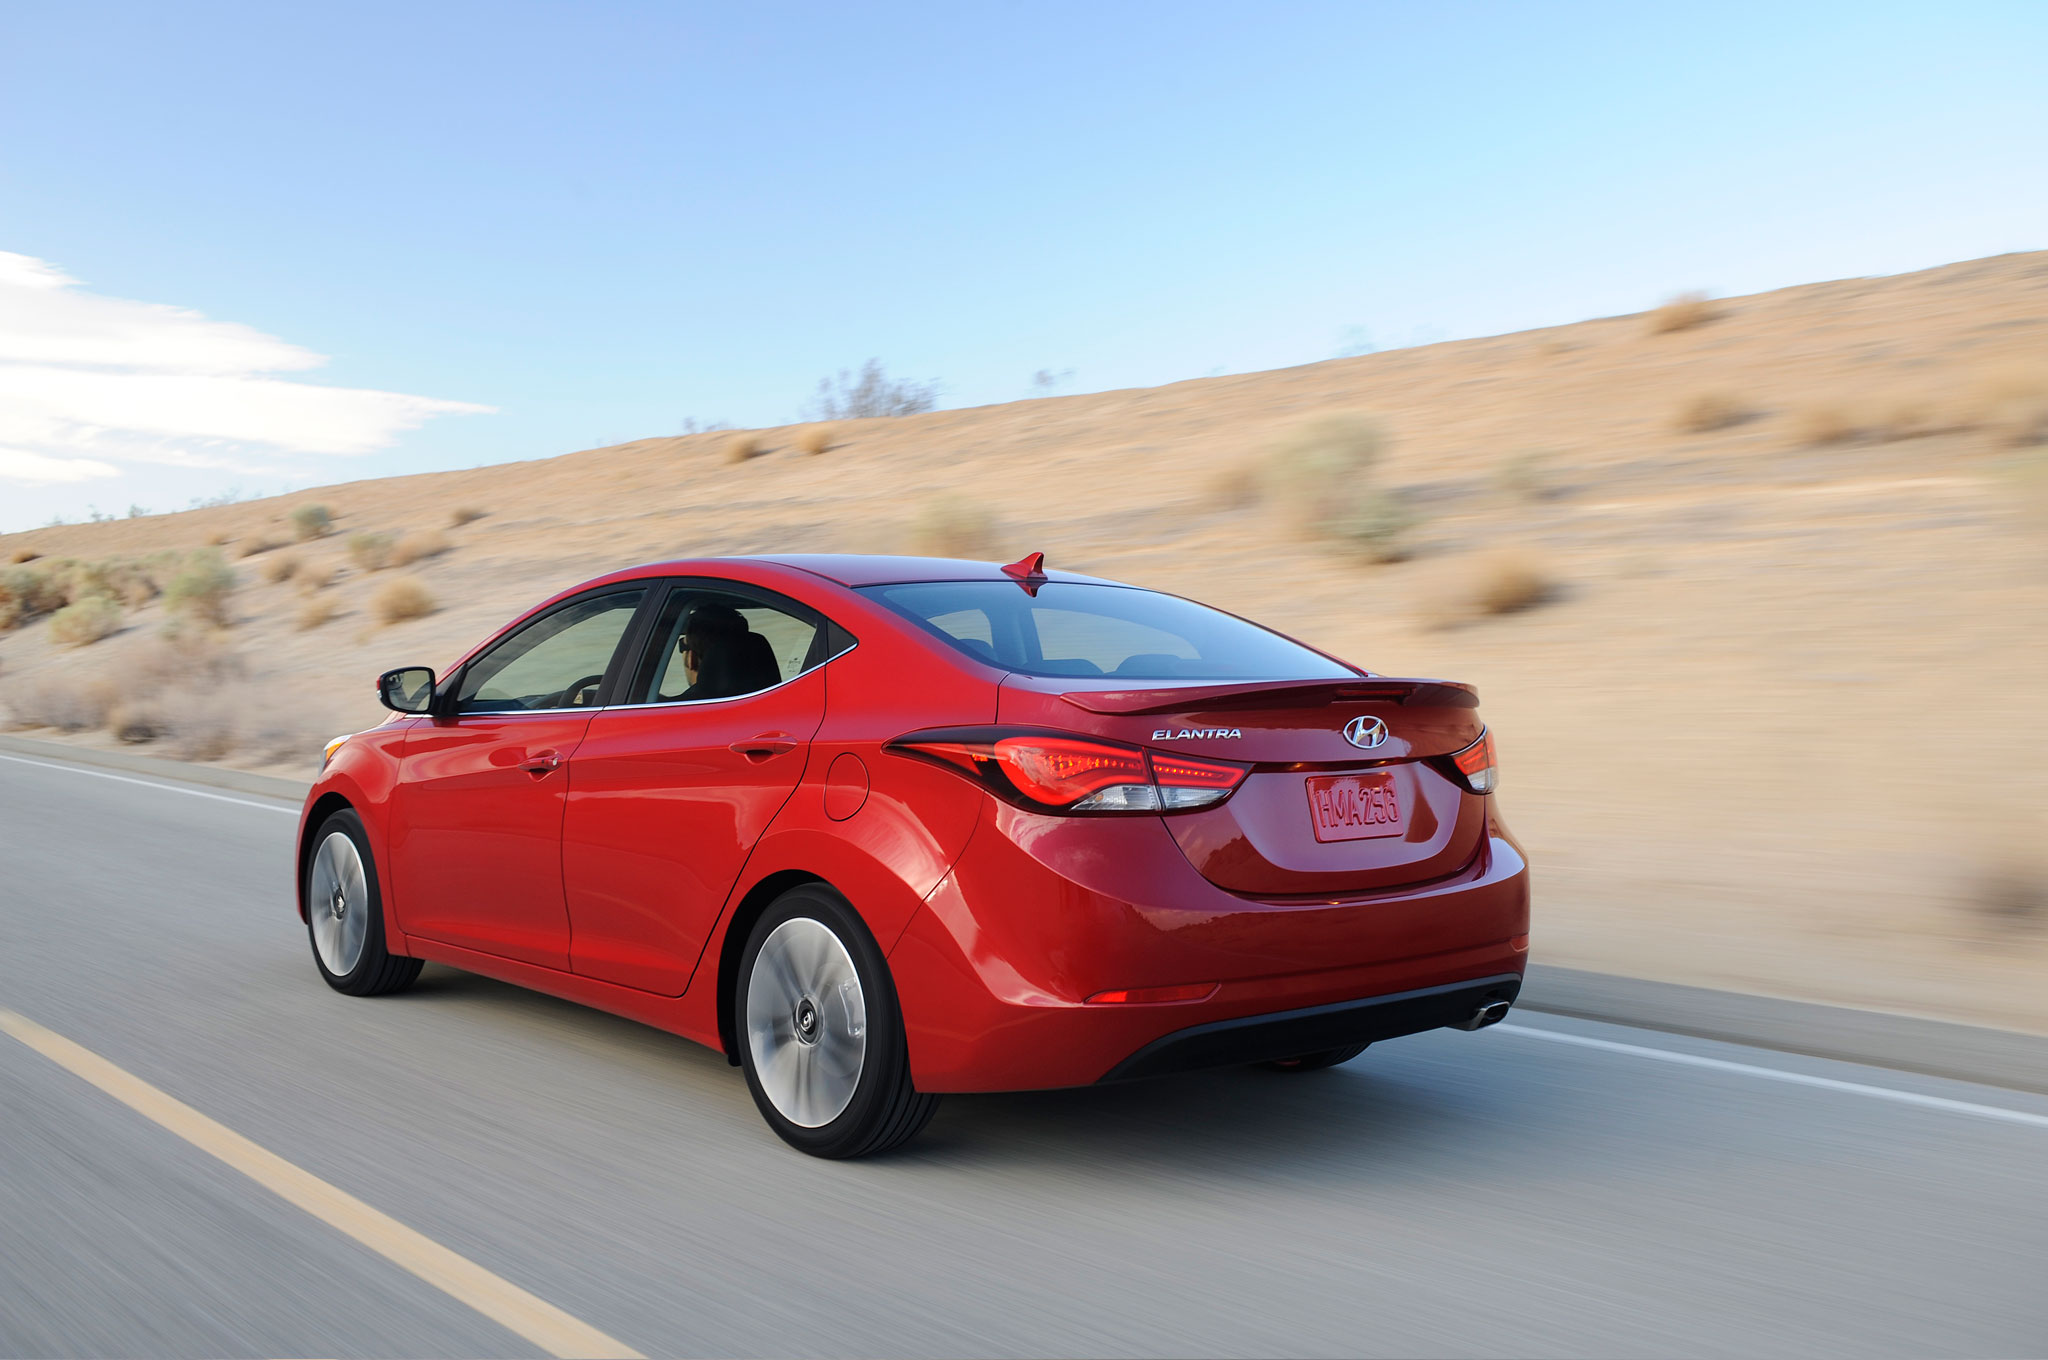 2014 Hyundai Elantra Refreshed at 2013 Los Angeles Auto Show